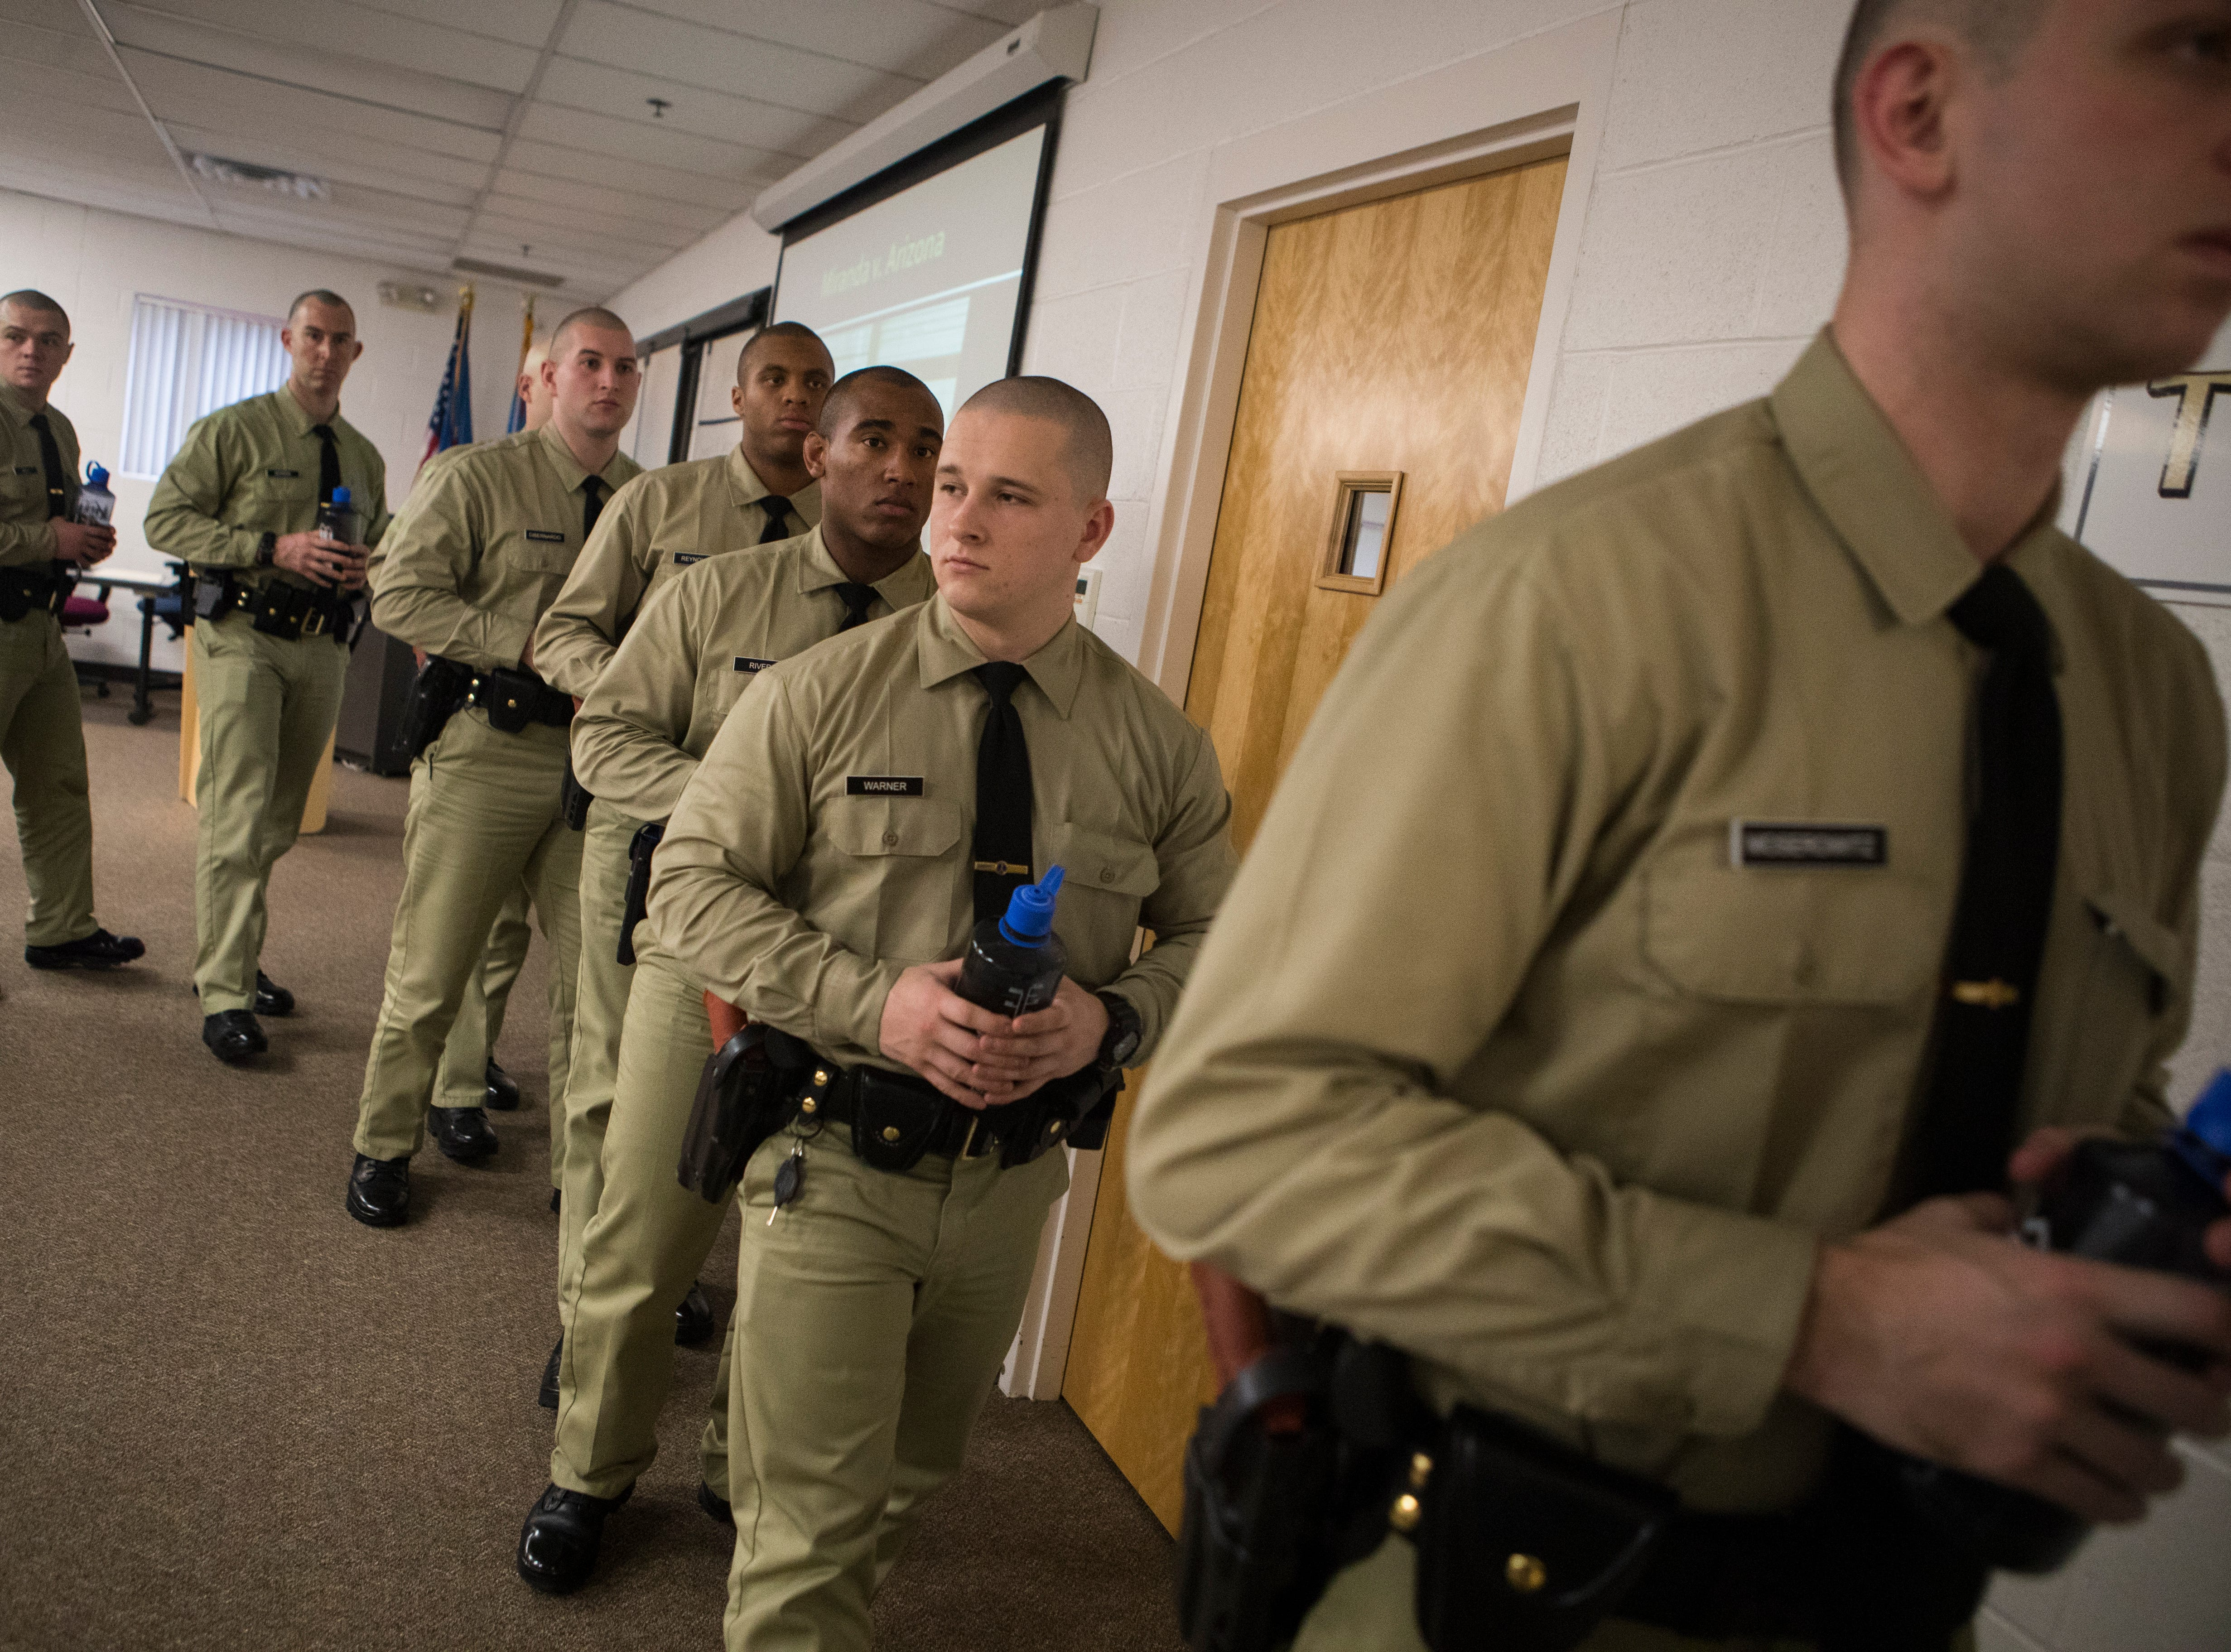 Recruits in the New Castle County Police Academy head towards the gym for physical training during a break from classroom instruction Thursday, Jan. 24, 2019 at the Lieutenant Joseph L. Szczerba Police Academy.